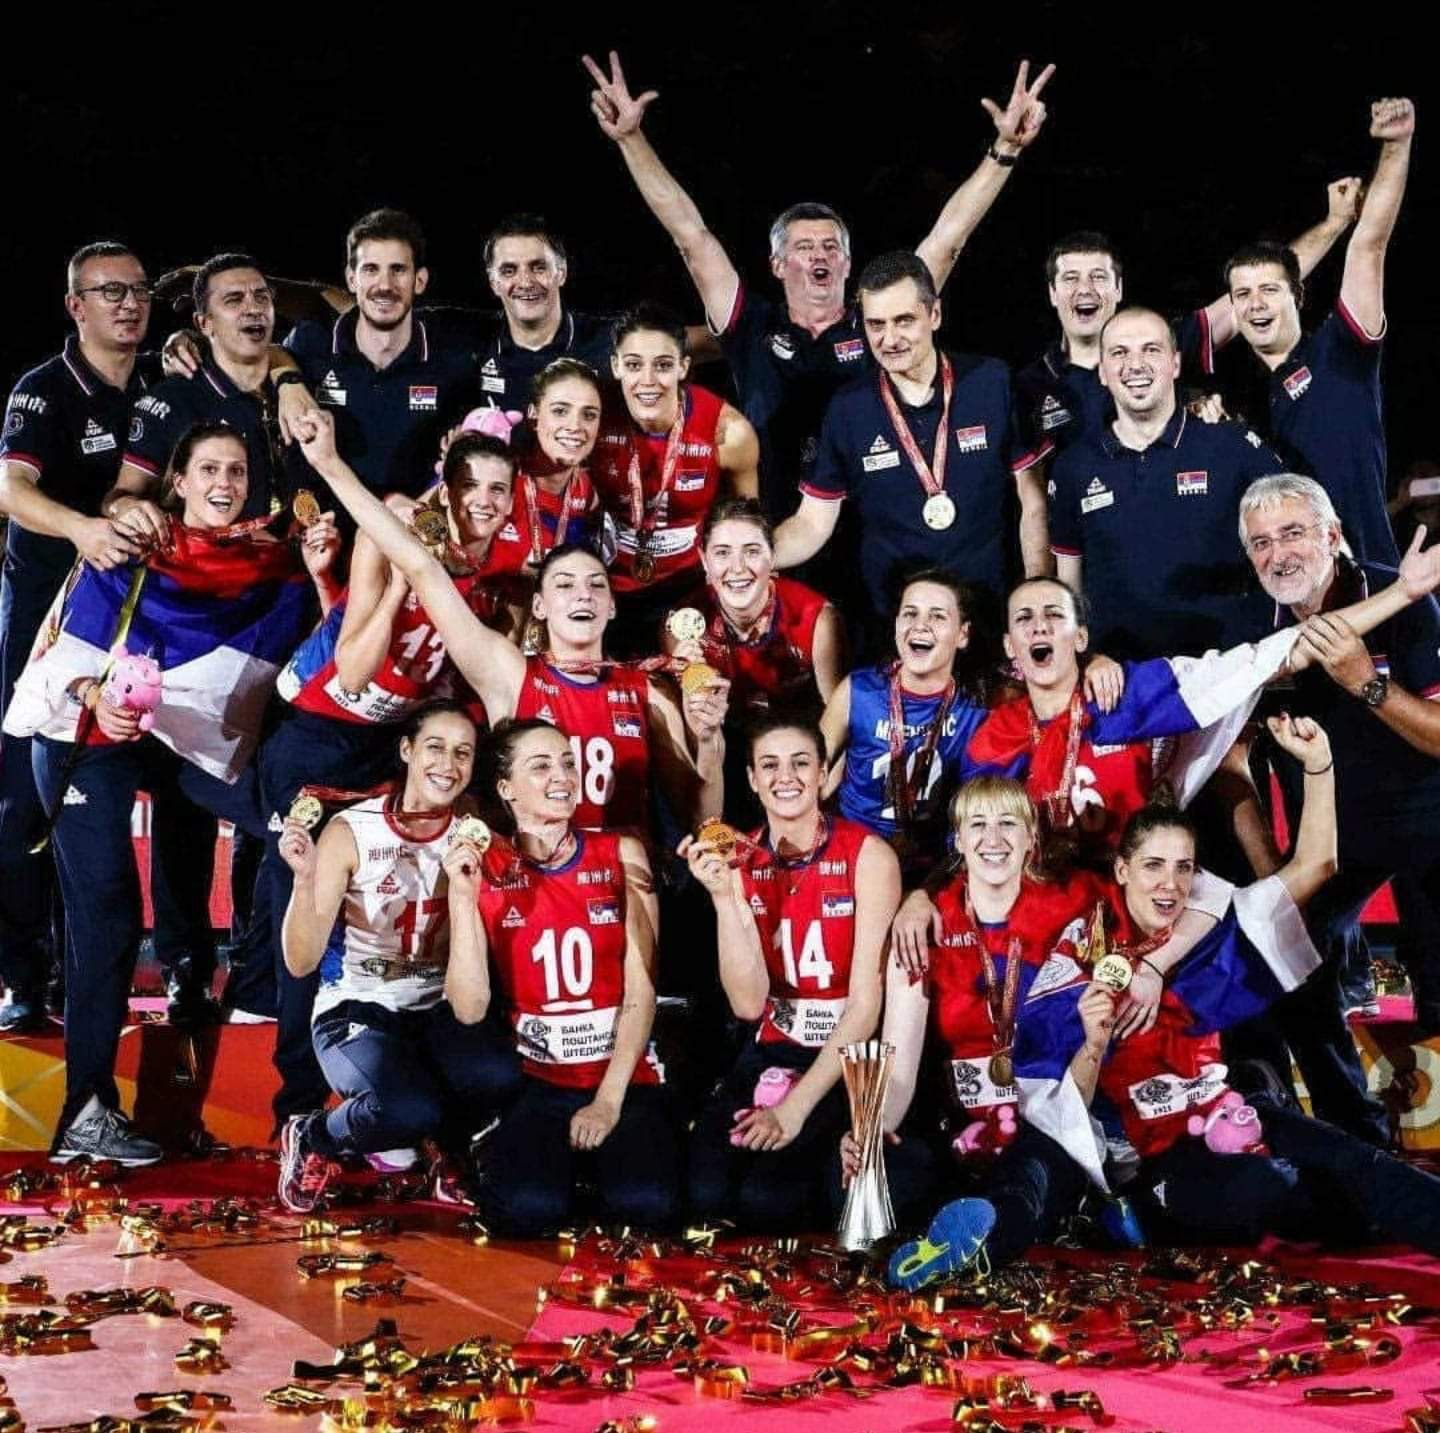 Pin By Katarina On Serbia Women Volleyball Volleyball History Volleyball